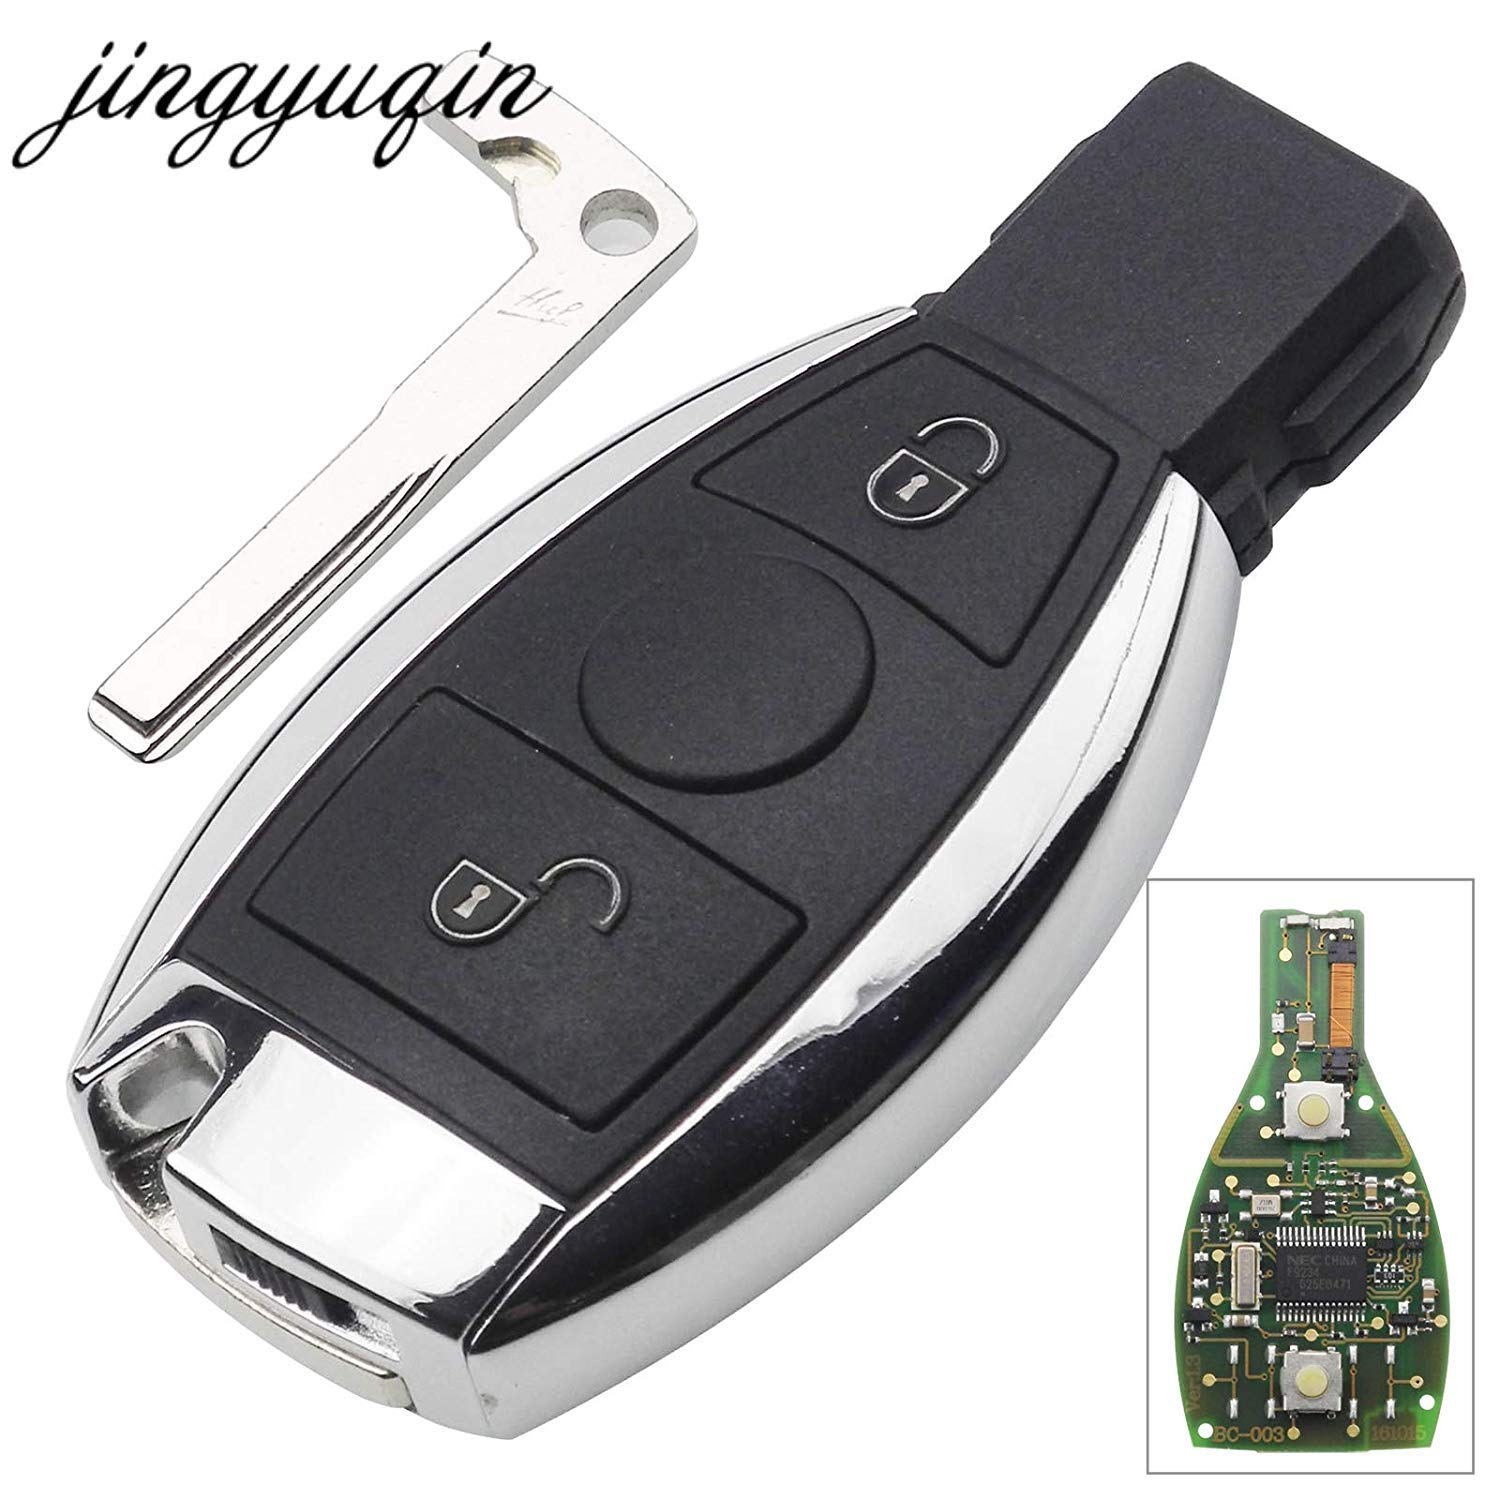 Jingyuqin BGA Style 2 Buttons Keyless Entry Remote Car Key 433MHz for MB Mercedes for Benz E S After 2000 Key Fob Replacement